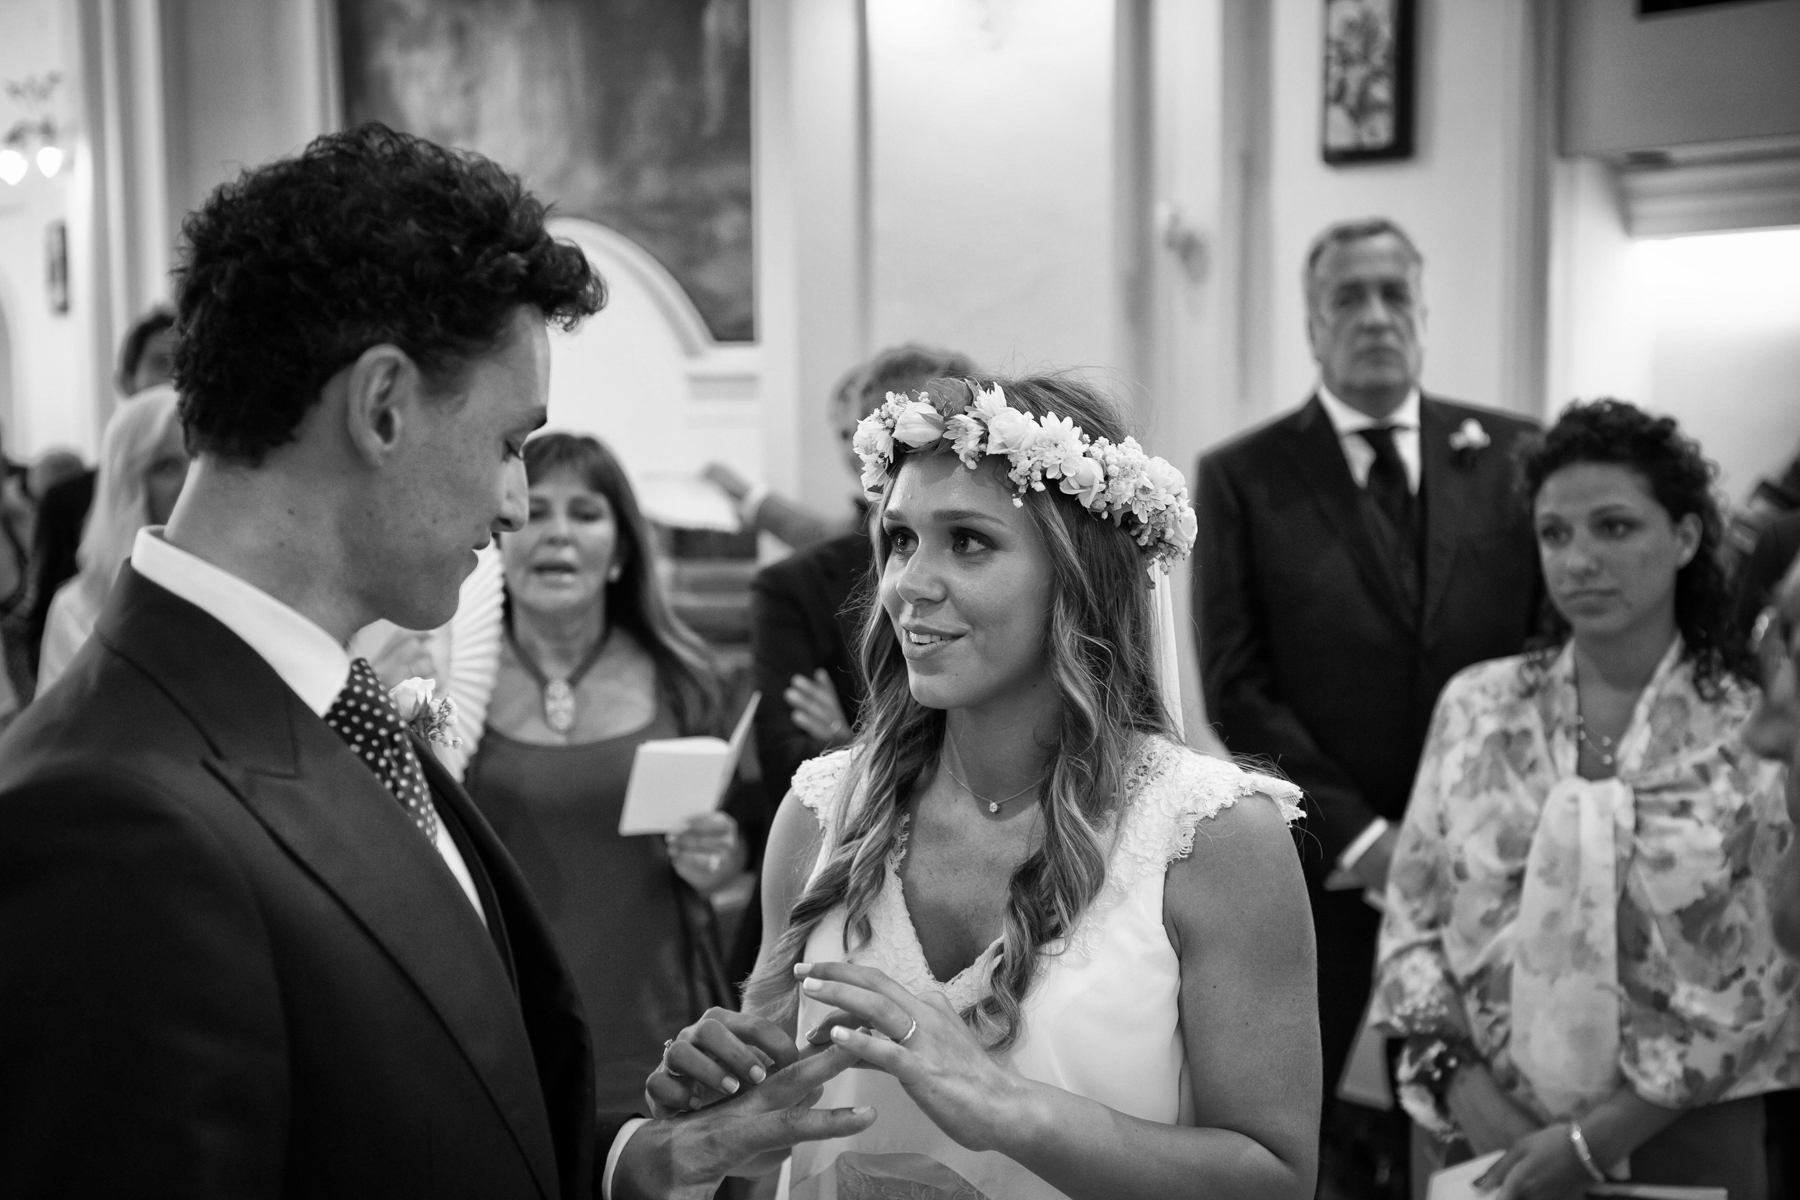 0140-_MG_6946-Modificafotografo-matrimonio-napoli-scattidamore